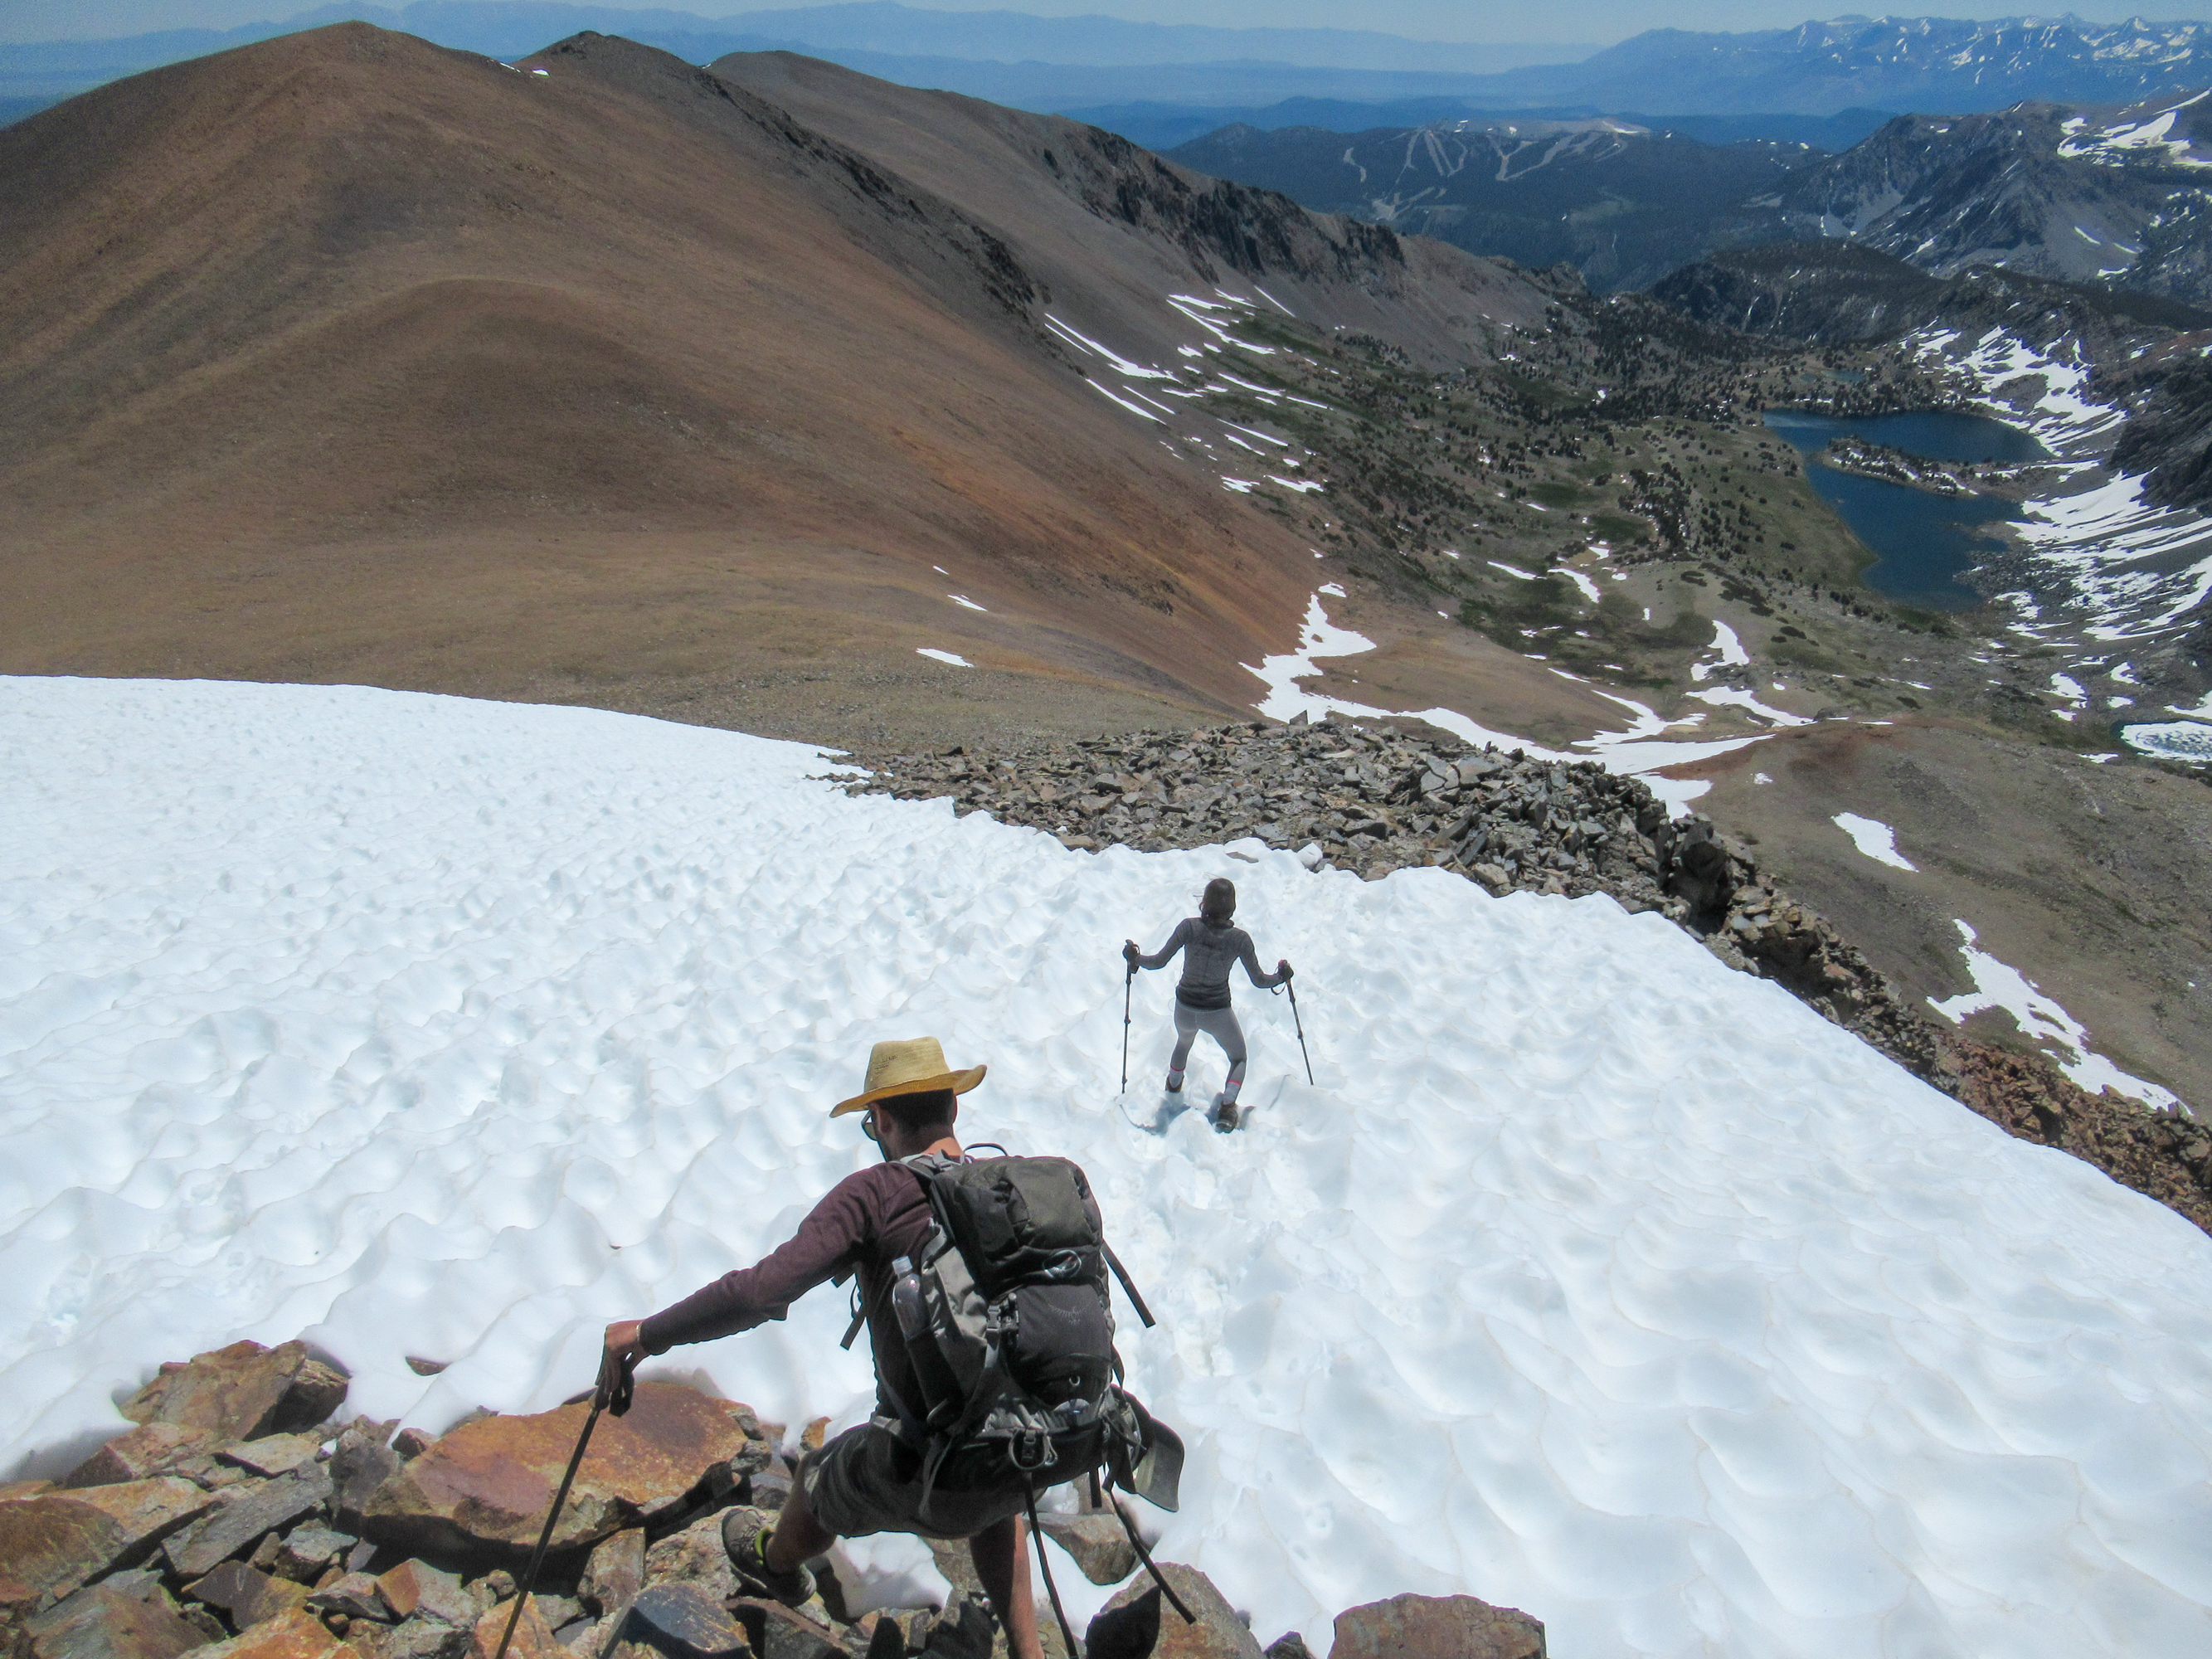 Crossing a snow field on top of Koip Peak.